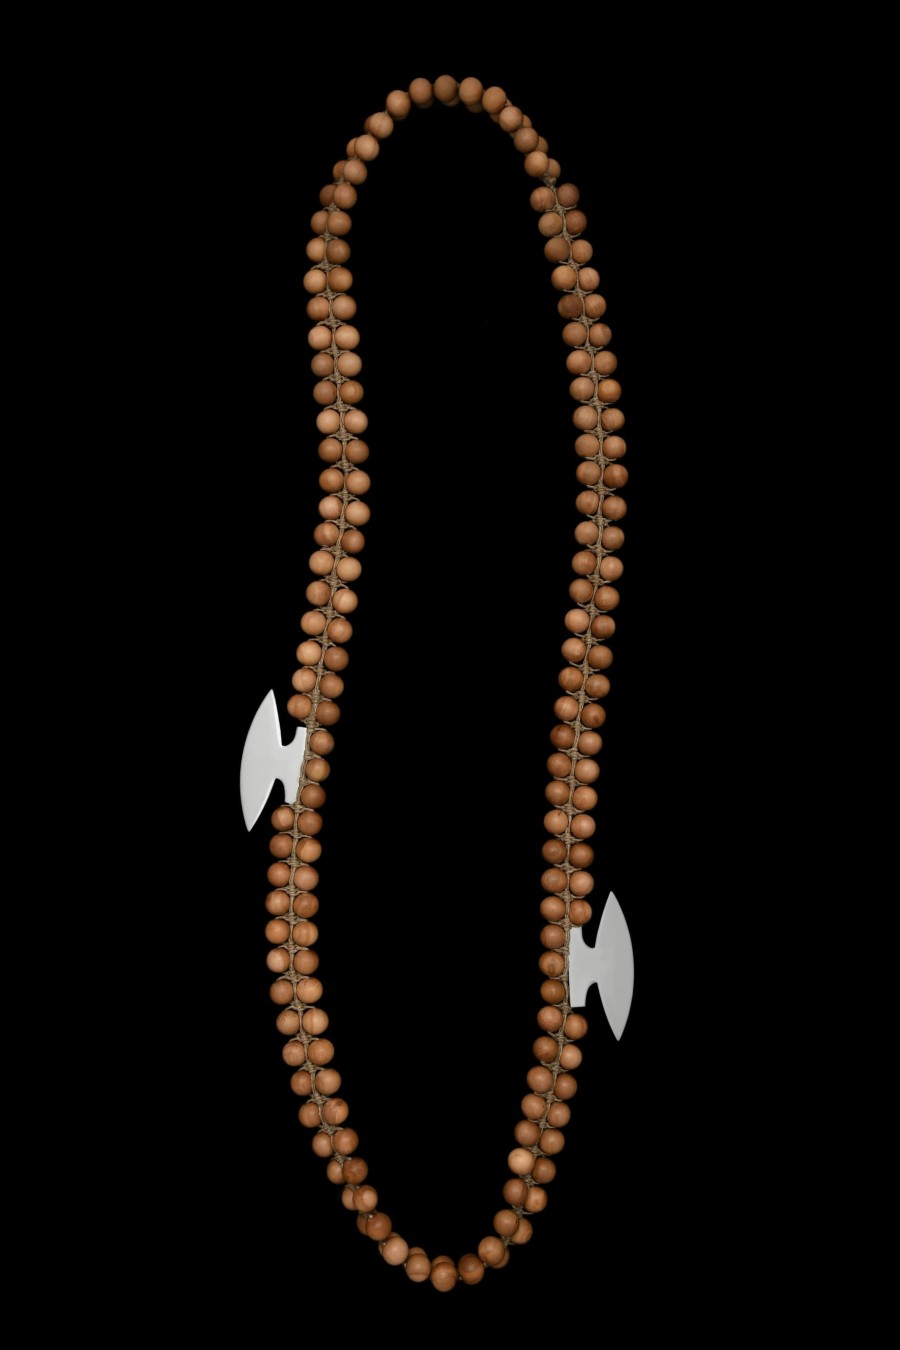 Sandalwoods big beads and stainless steel